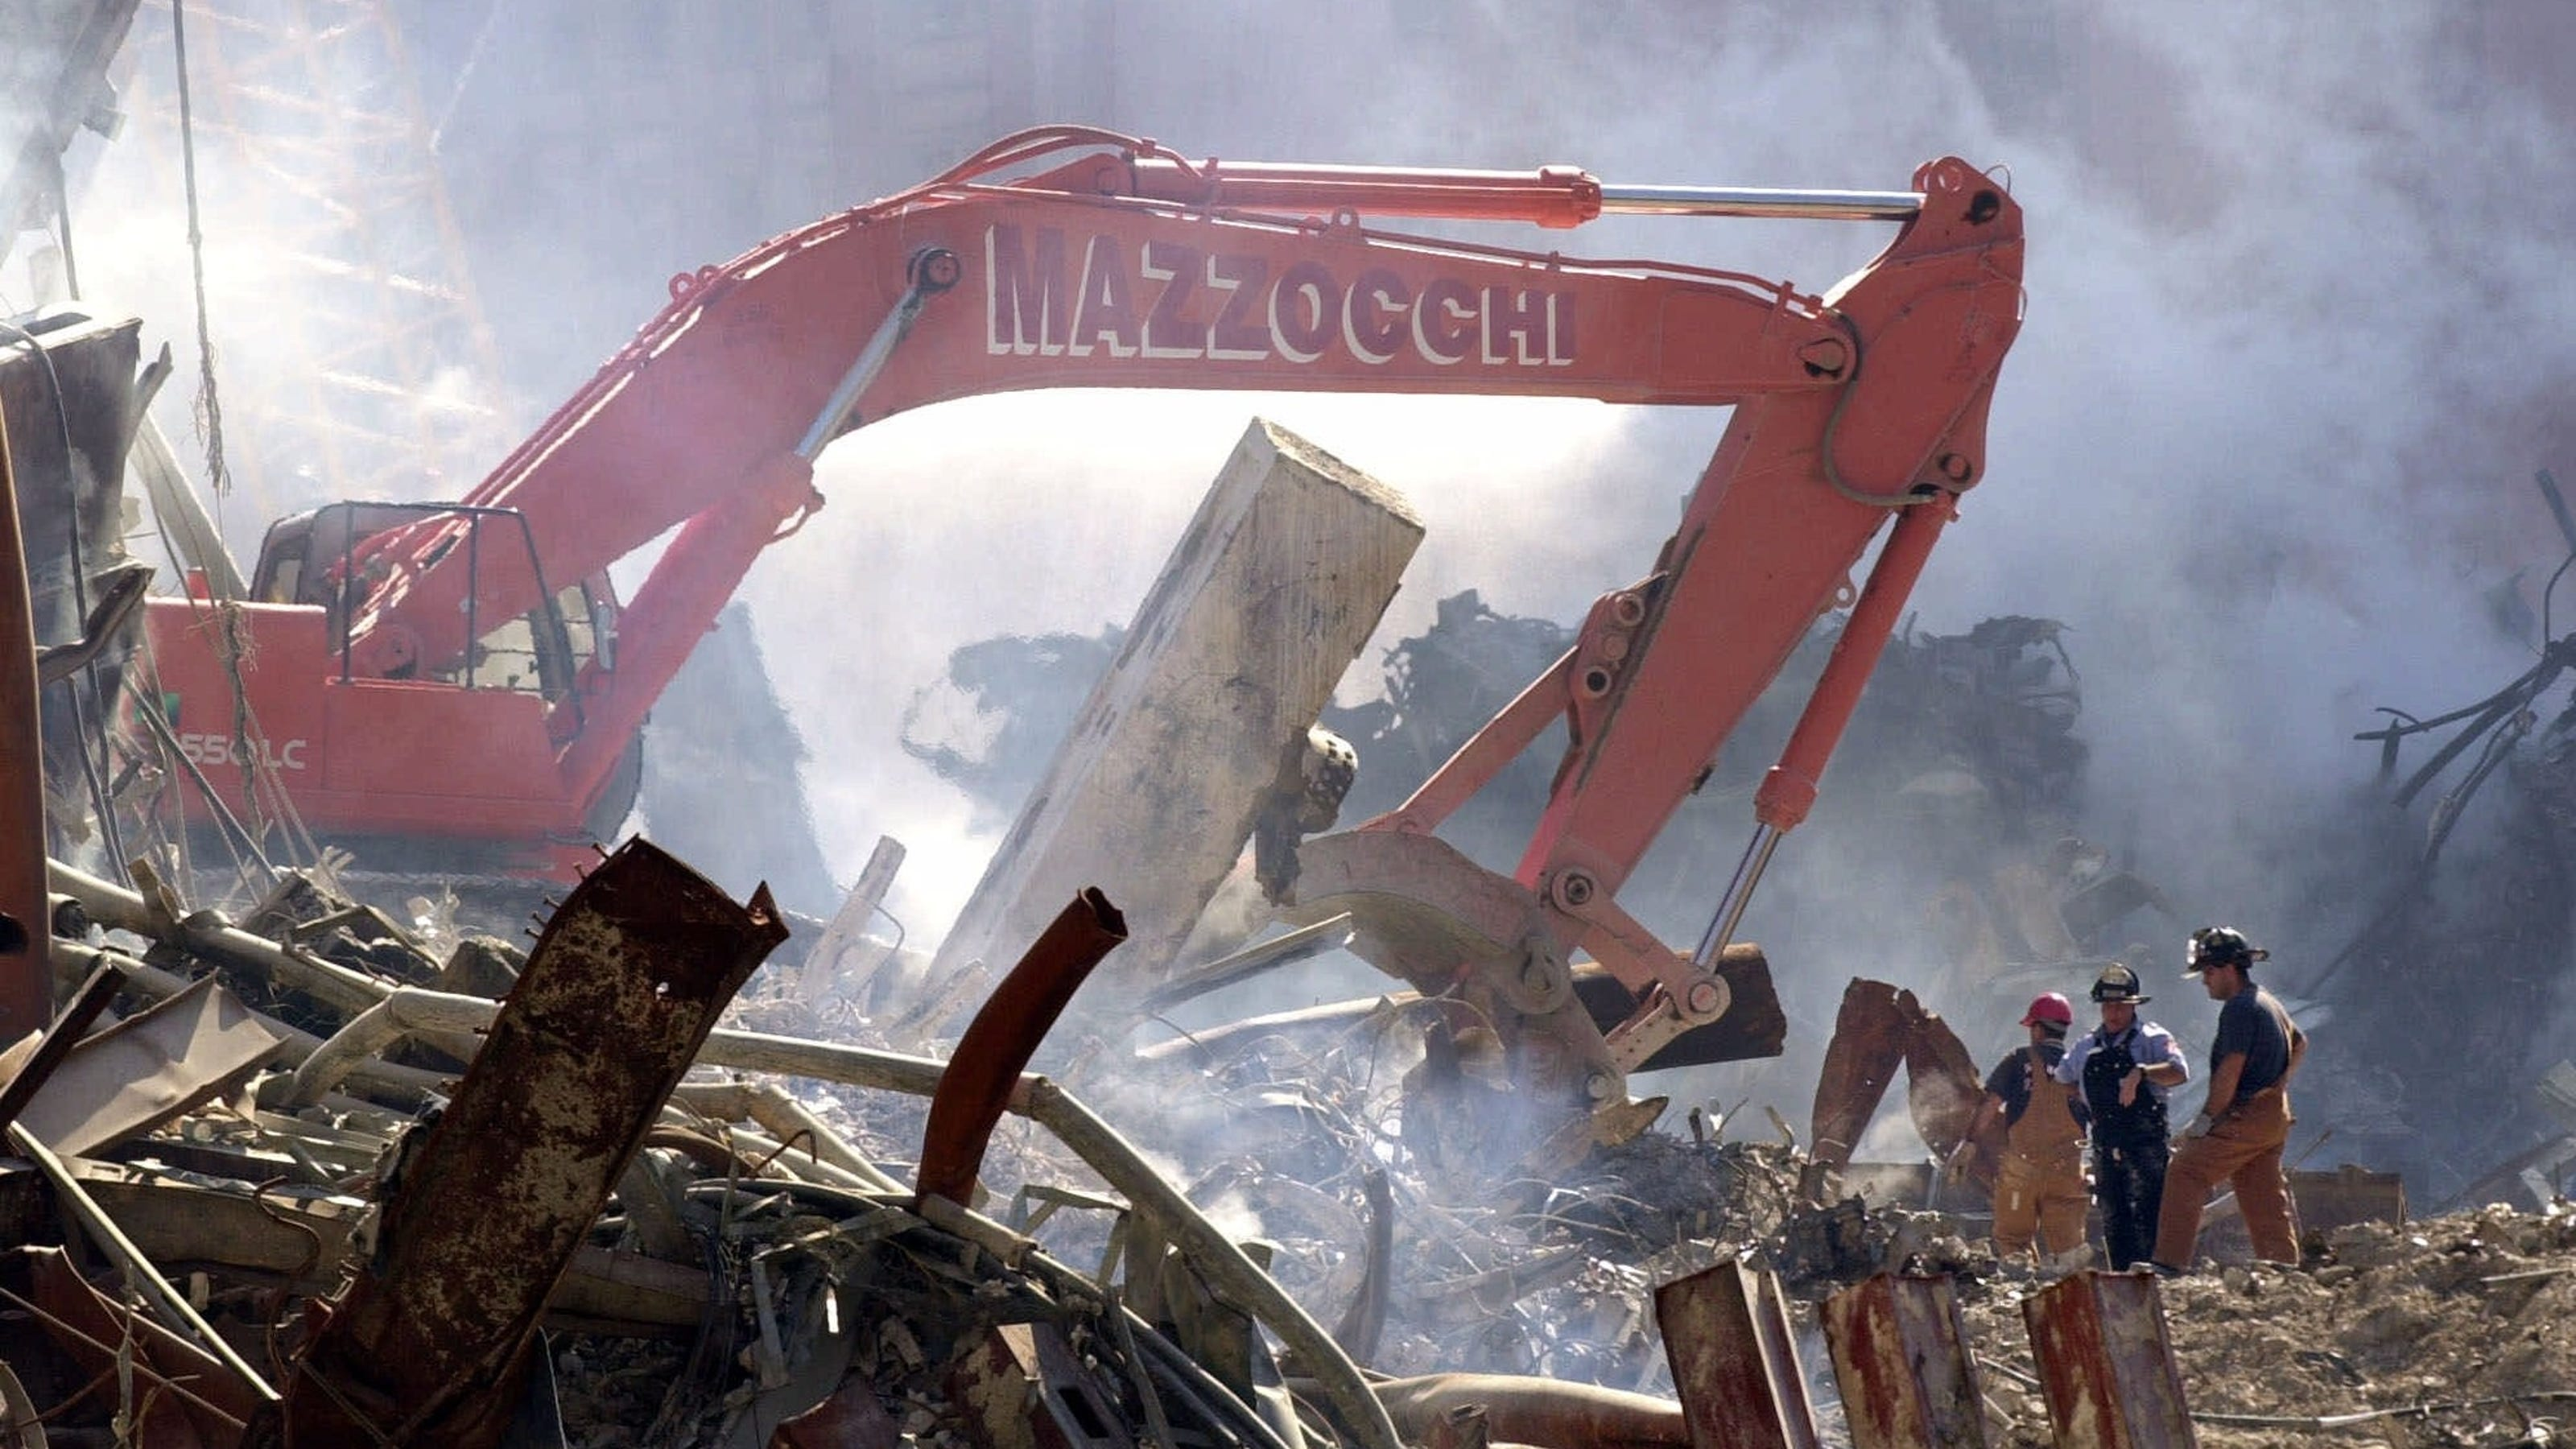 World Trade Center Human Remains WTC debris to be sifte...